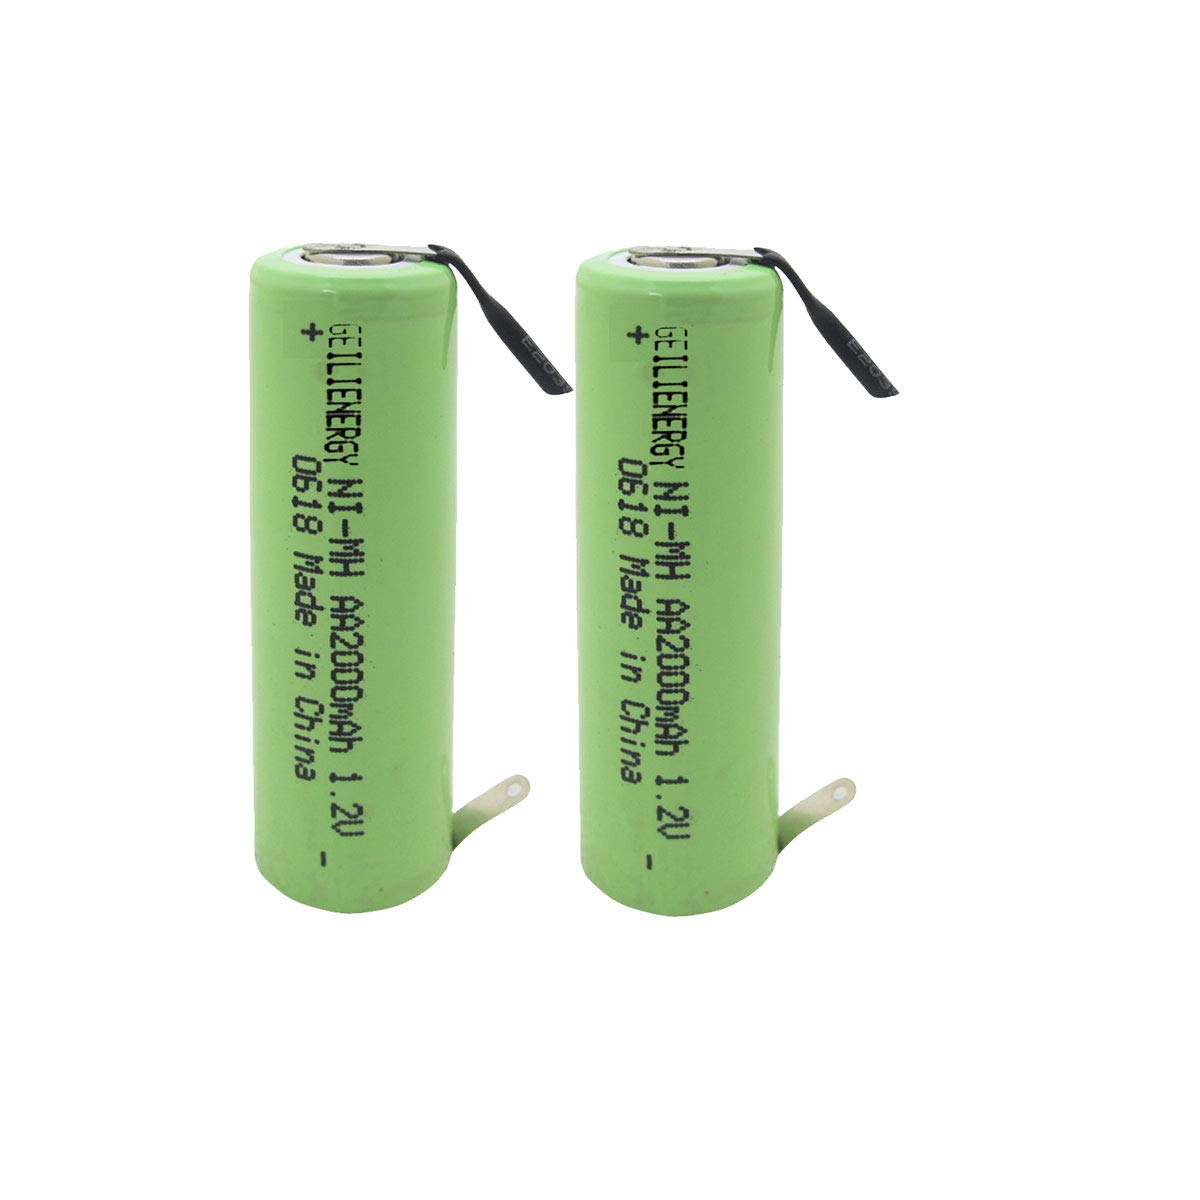 Geilienergy NiMh 1.2V AA 2000mAh Shaver battery with solder tabs for Braun, Norelco, Remington shaver models (Pack Of 2)